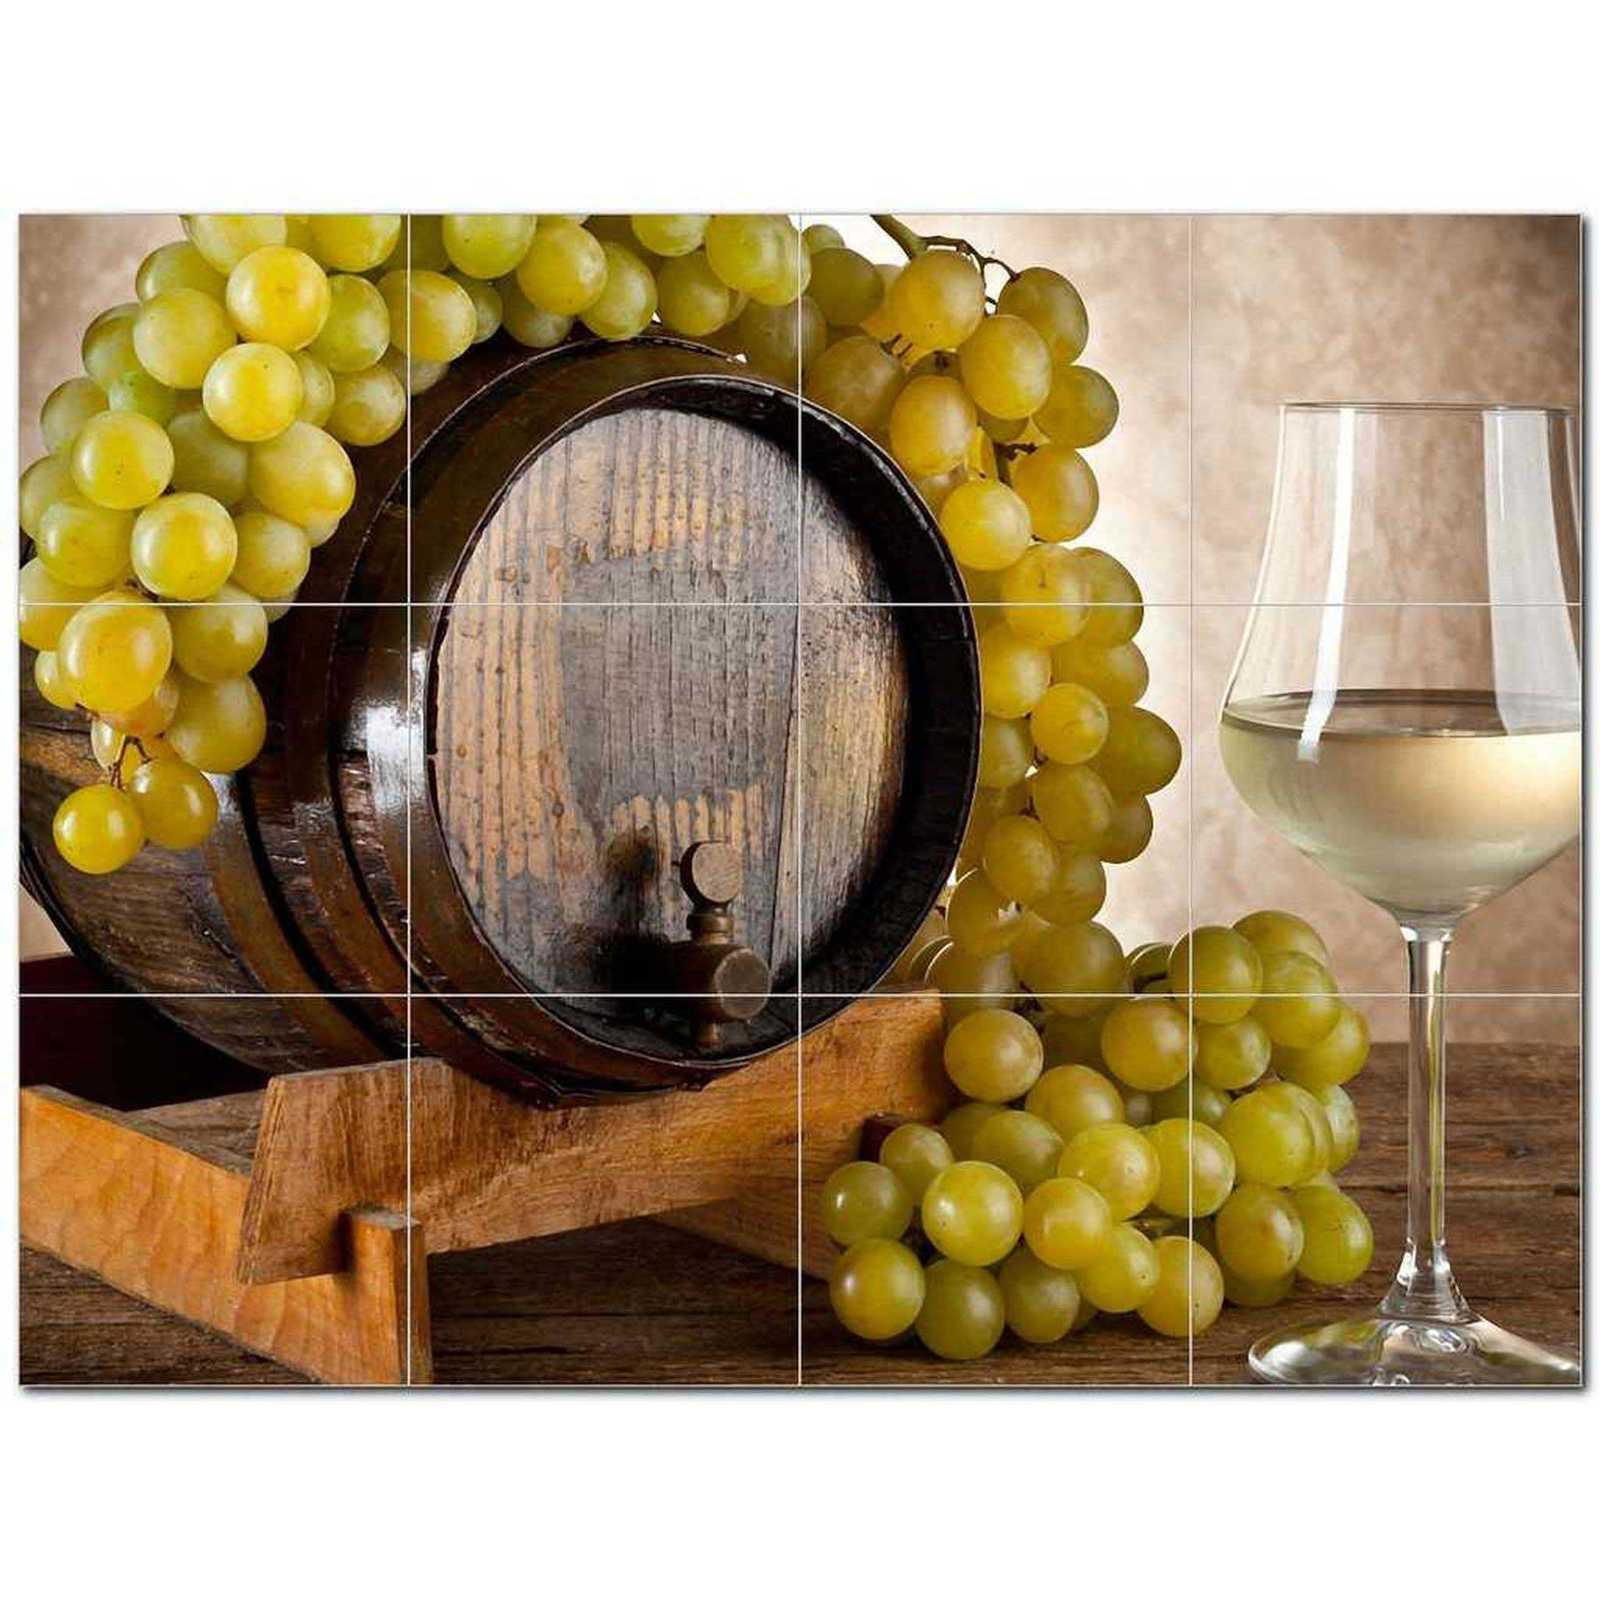 Primary image for Wine Grapes Ceramic Tile Mural Kitchen Backsplash Bathroom Shower BAZ406367